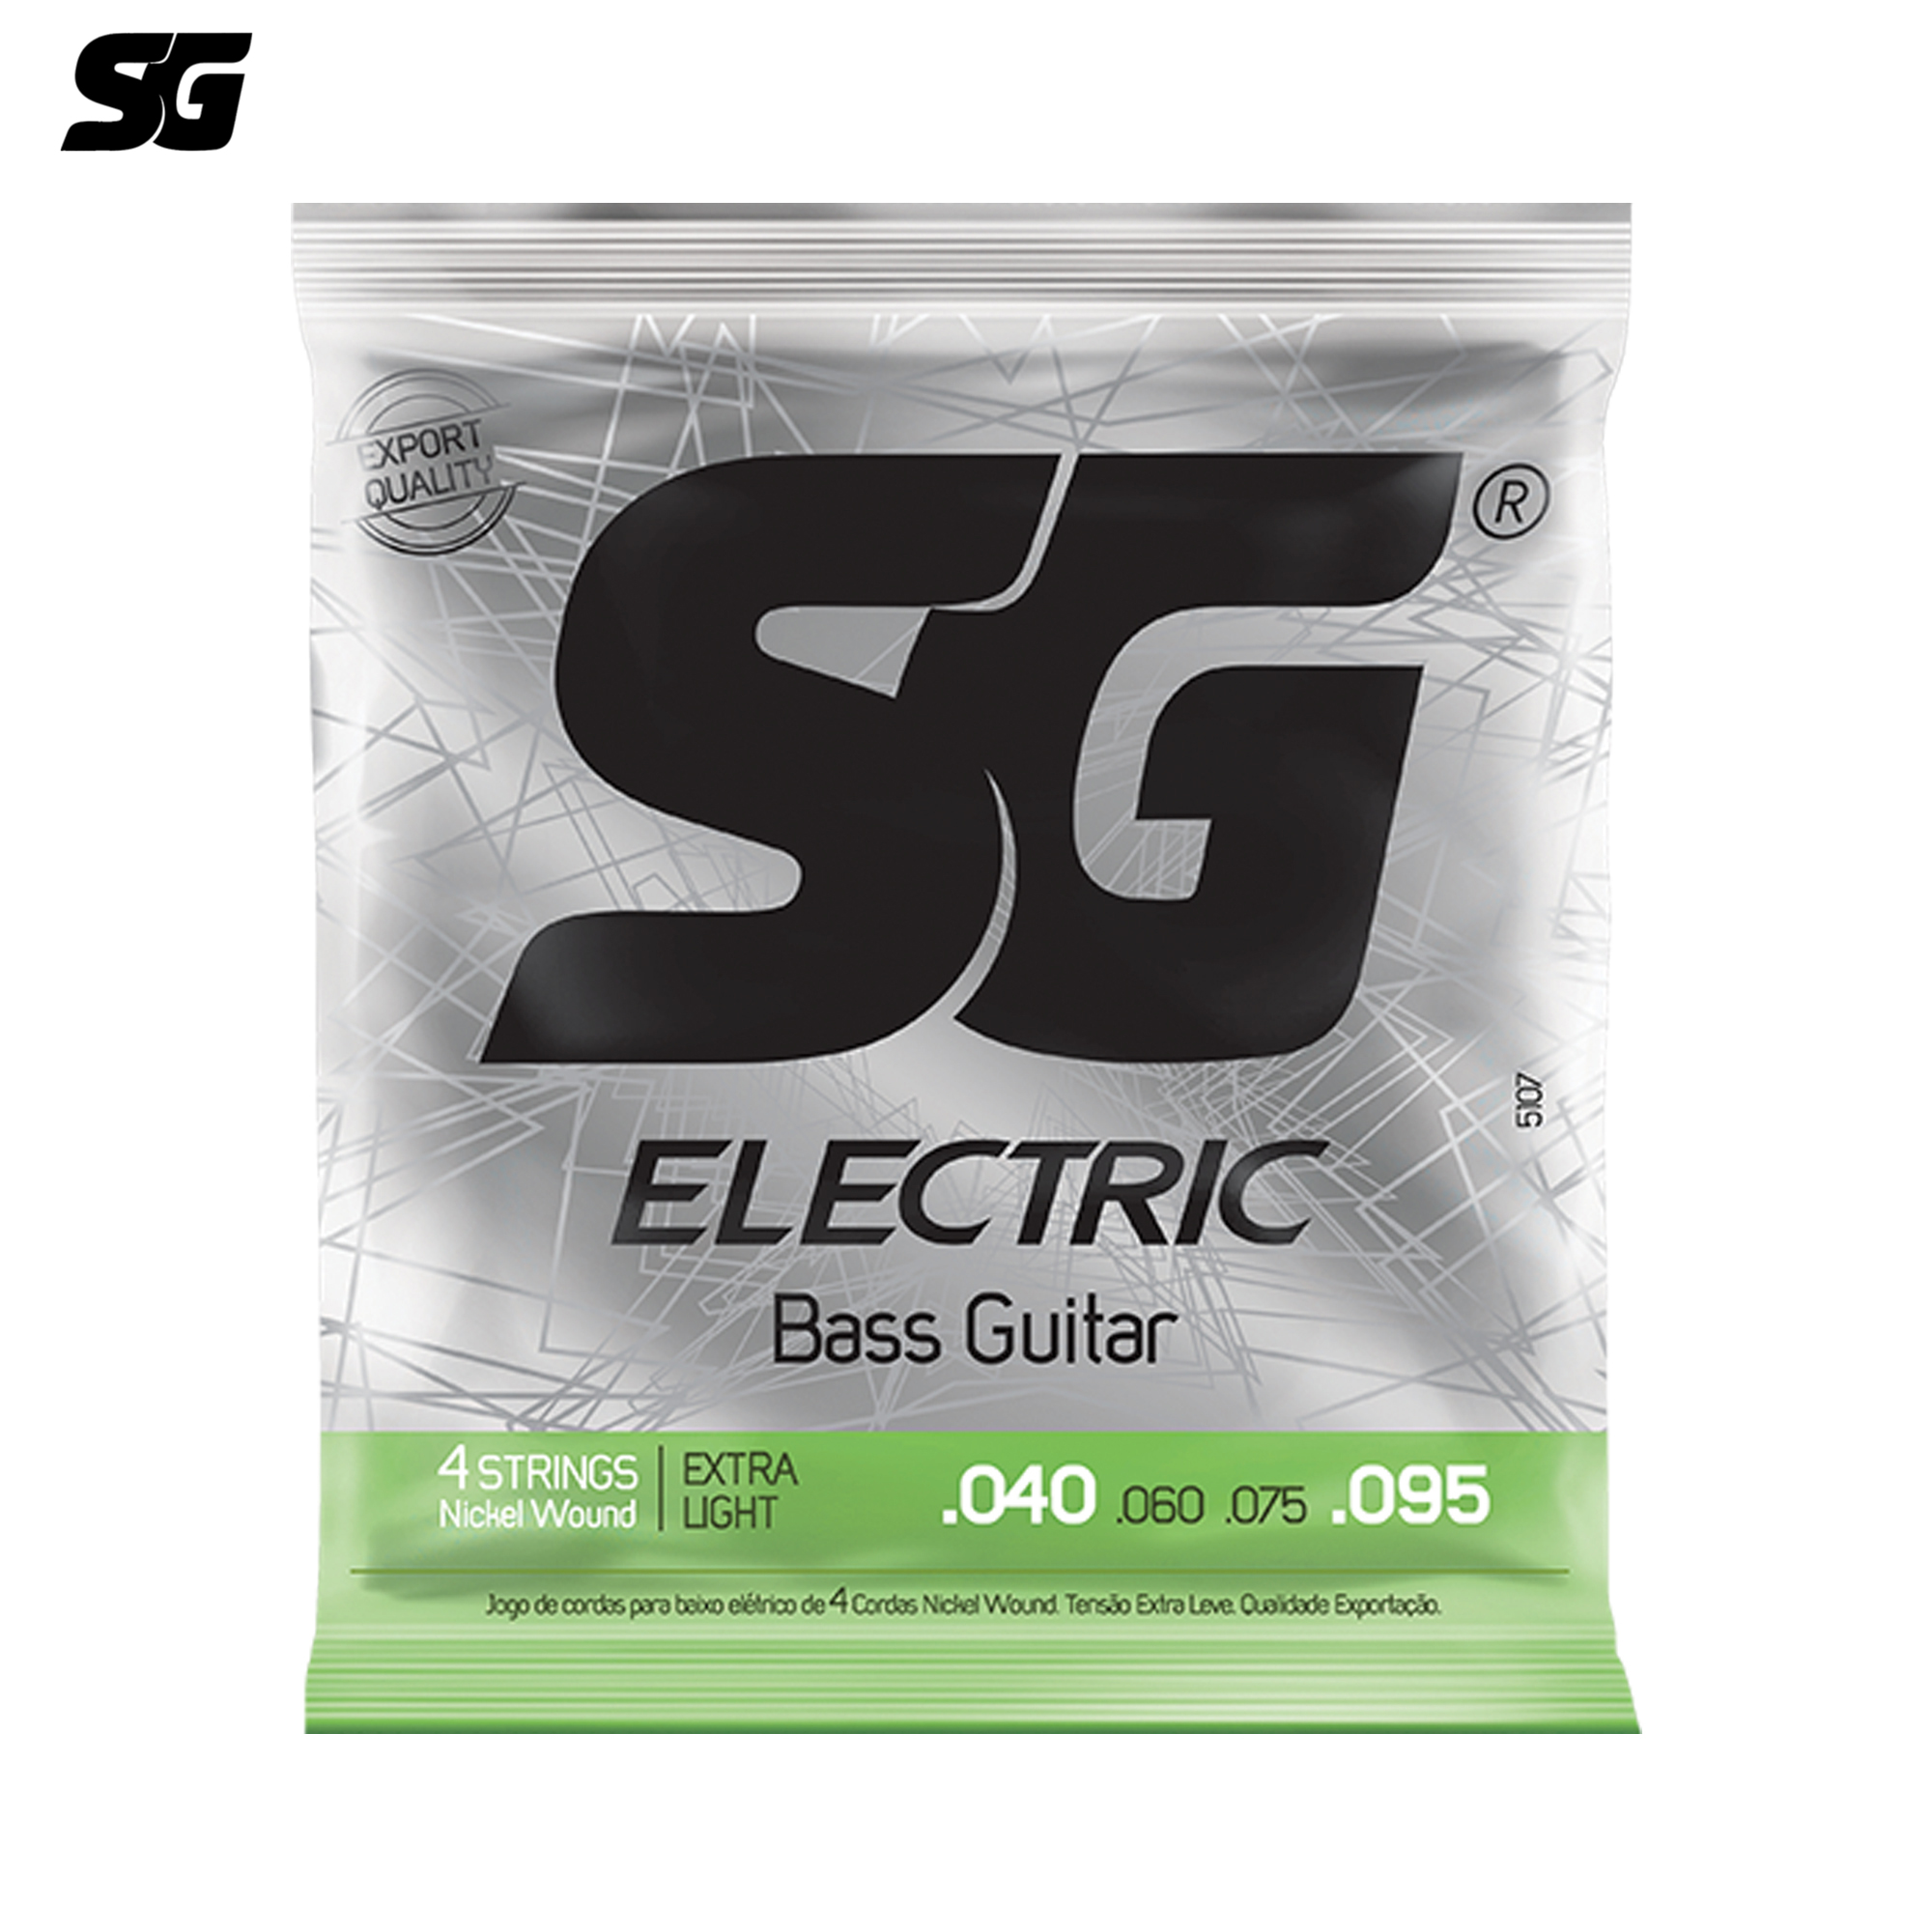 SG Brazil Electric Bass Strings Italy Technology USA Material Nickle Wound 040-095 inch Tin-plated Steel Hexagonal Core 5198EX rotosound rs66lc bass strings stainless steel